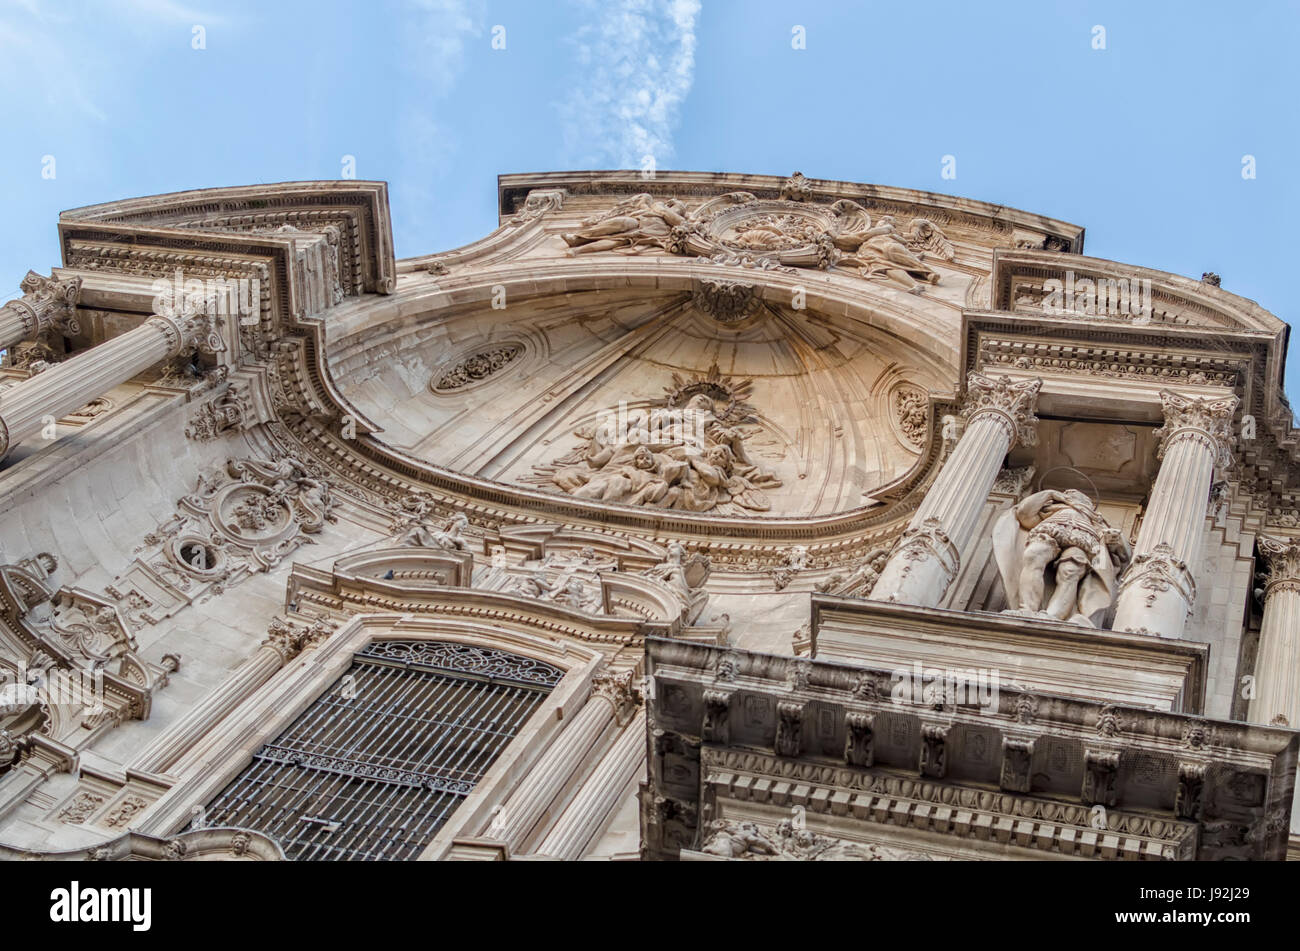 Catedral de Murcia, Cathedral of Murcia - Stock Image